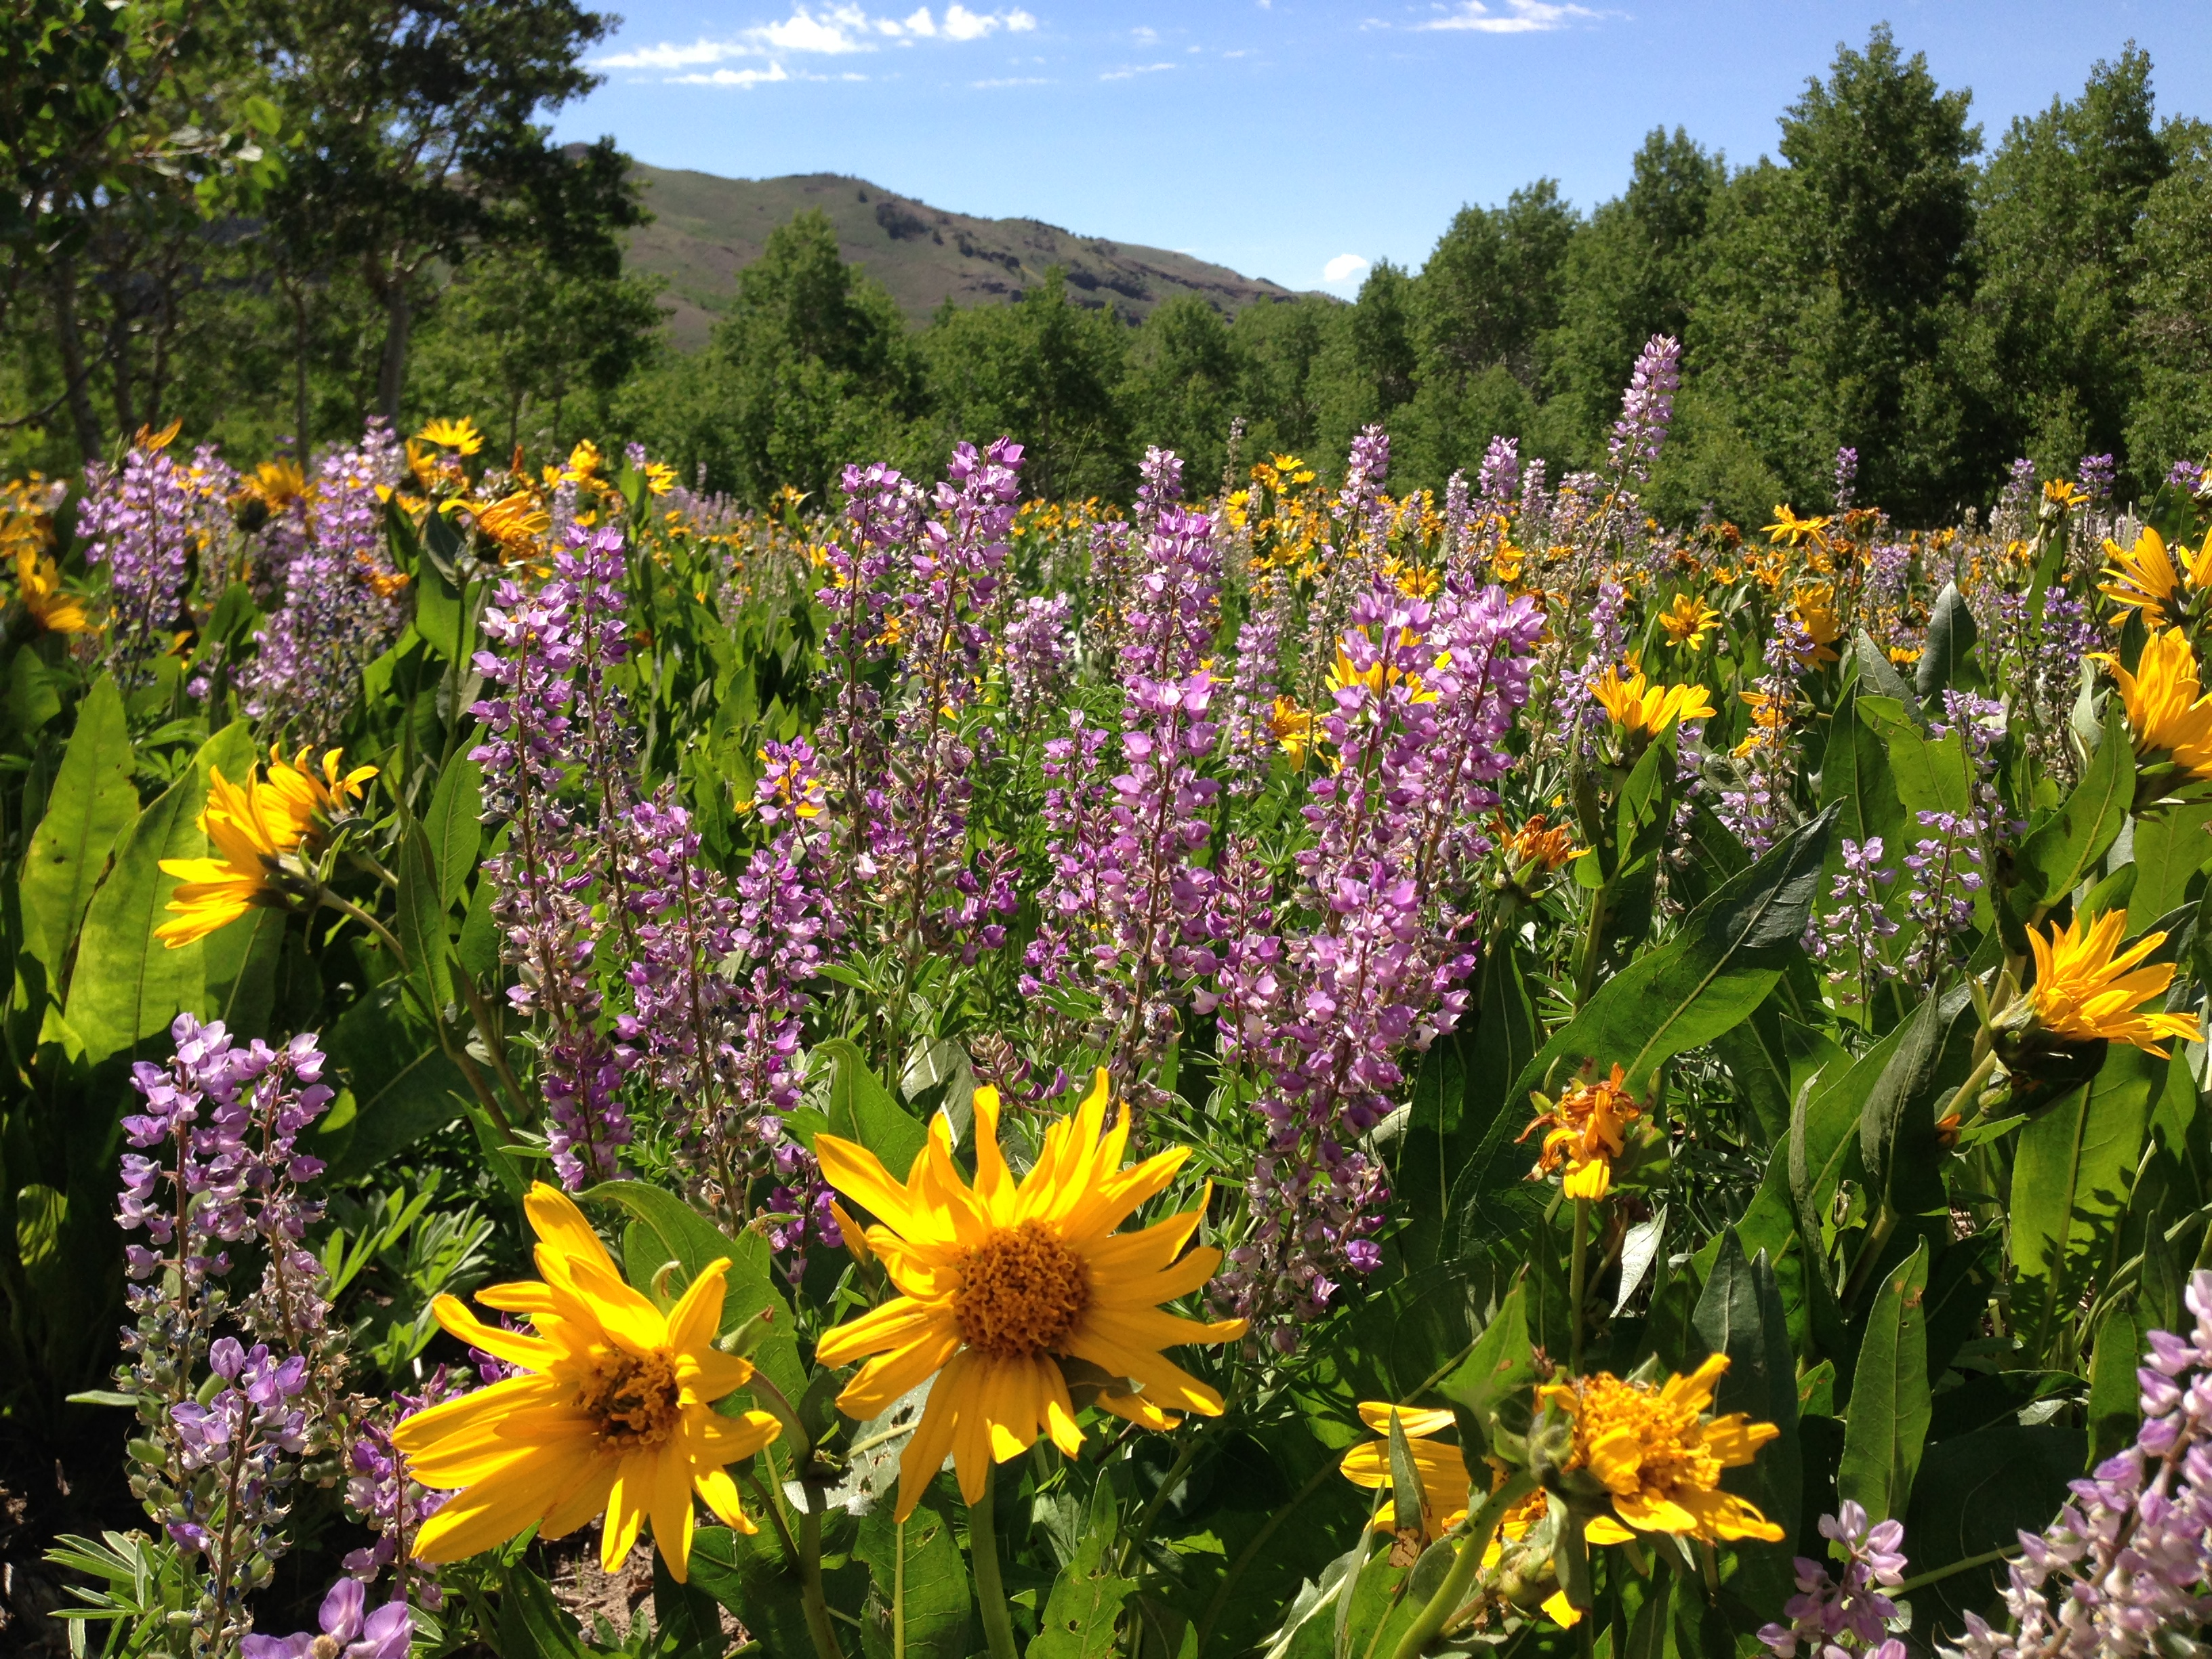 Wildflowers near Camp Draw in Copper Basin of the Humboldt-Toiyabe National Forest on June 28 2013